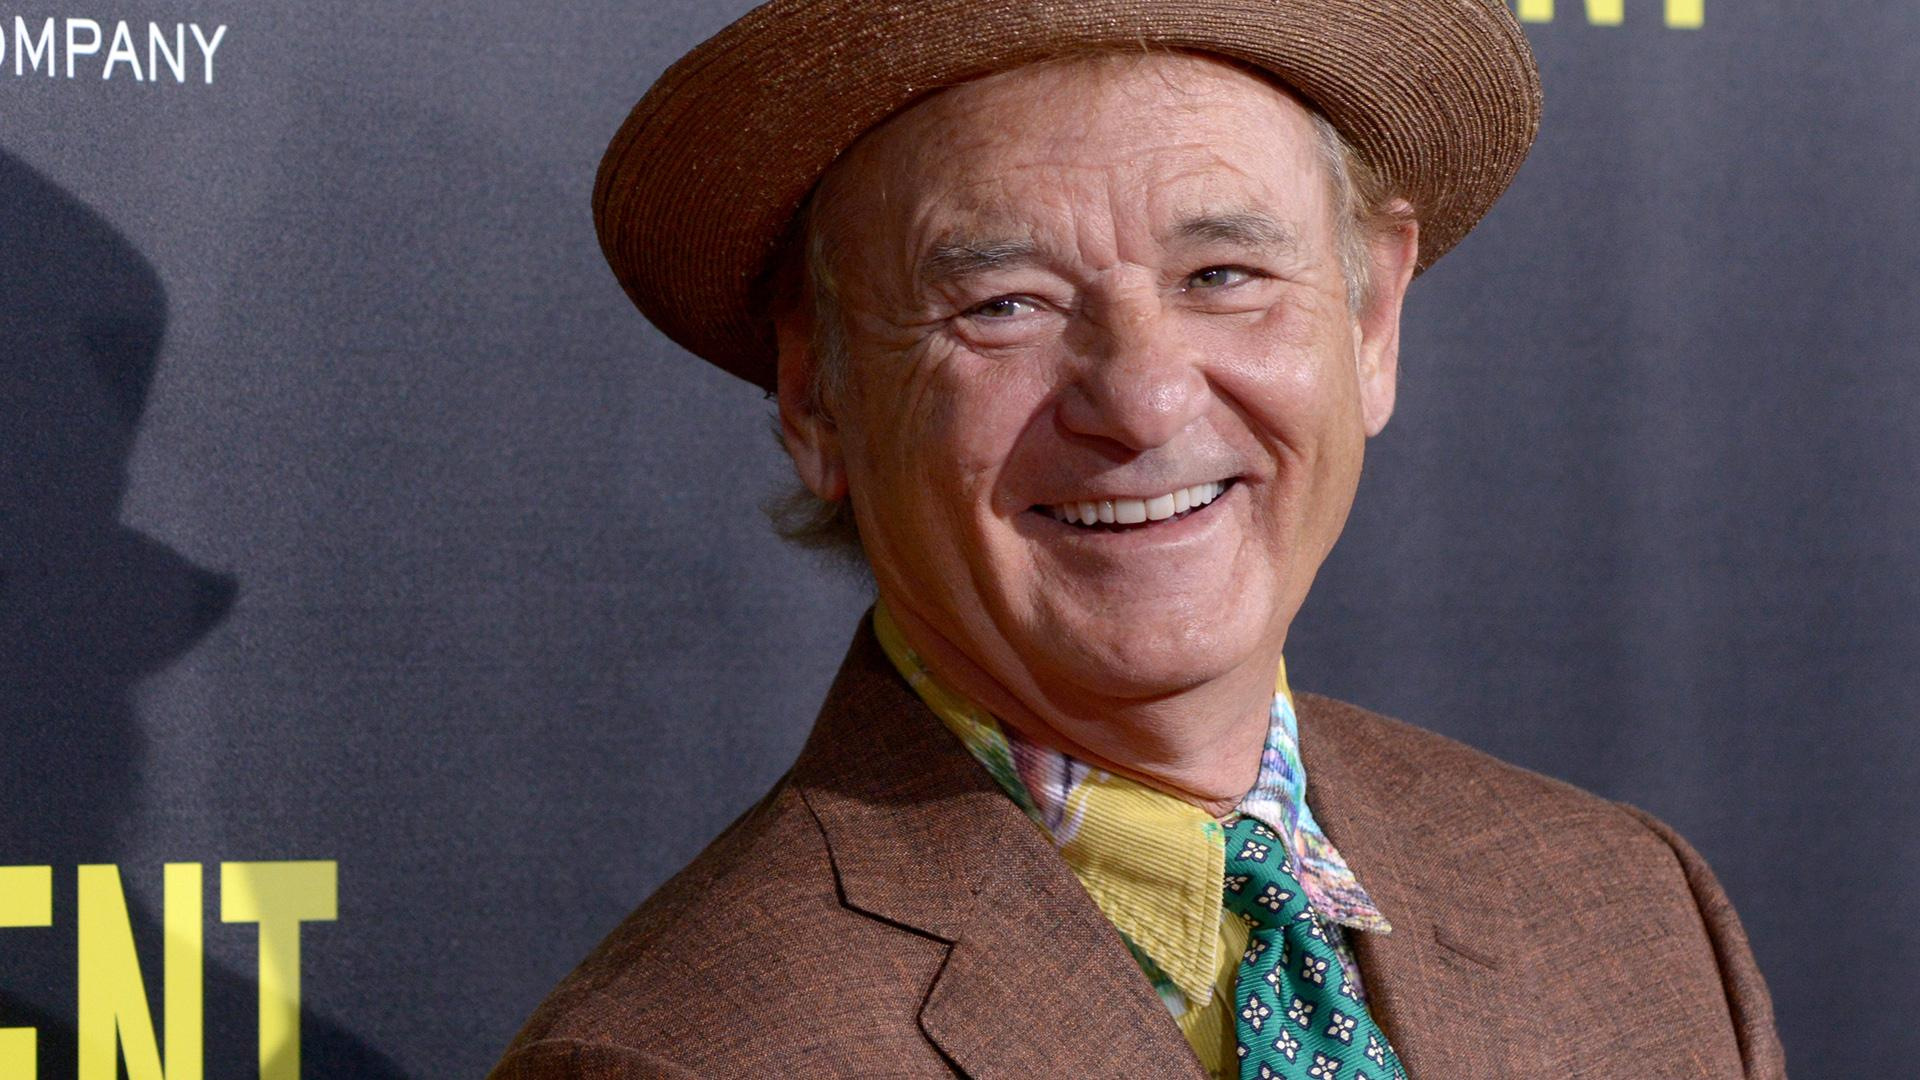 Bill Murray Wallpapers High Quality | Download Free